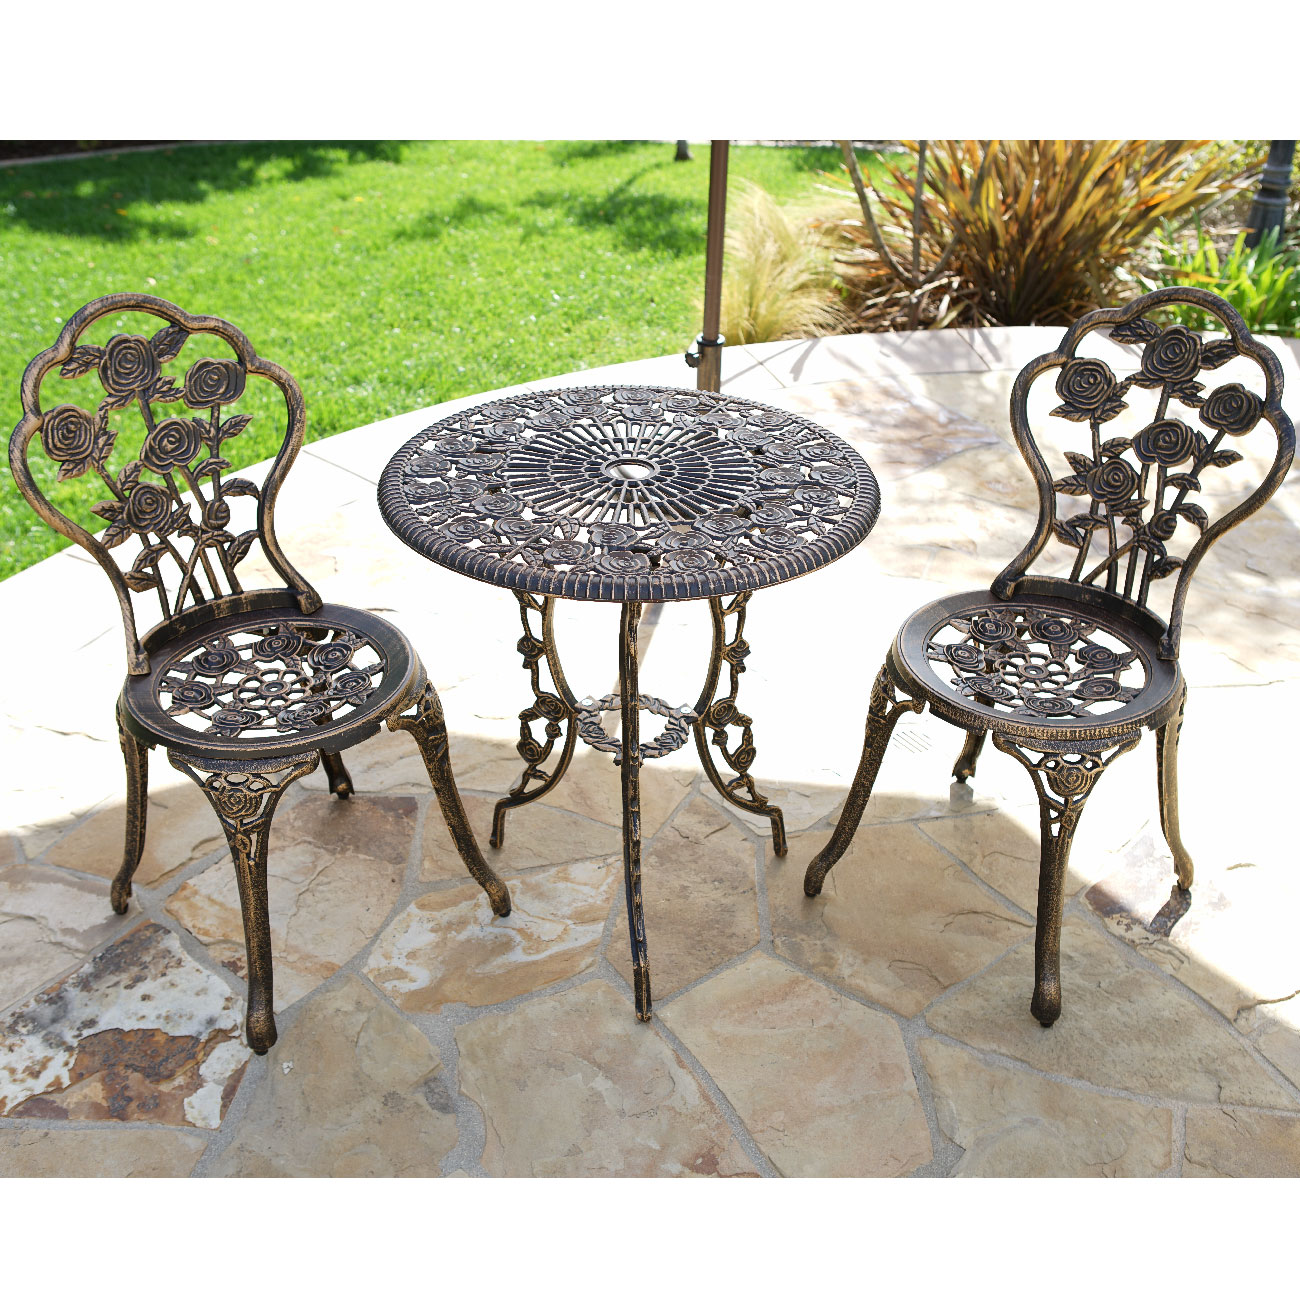 White aluminum patio furniture sets 3 cast aluminum for Metal patio furniture sets